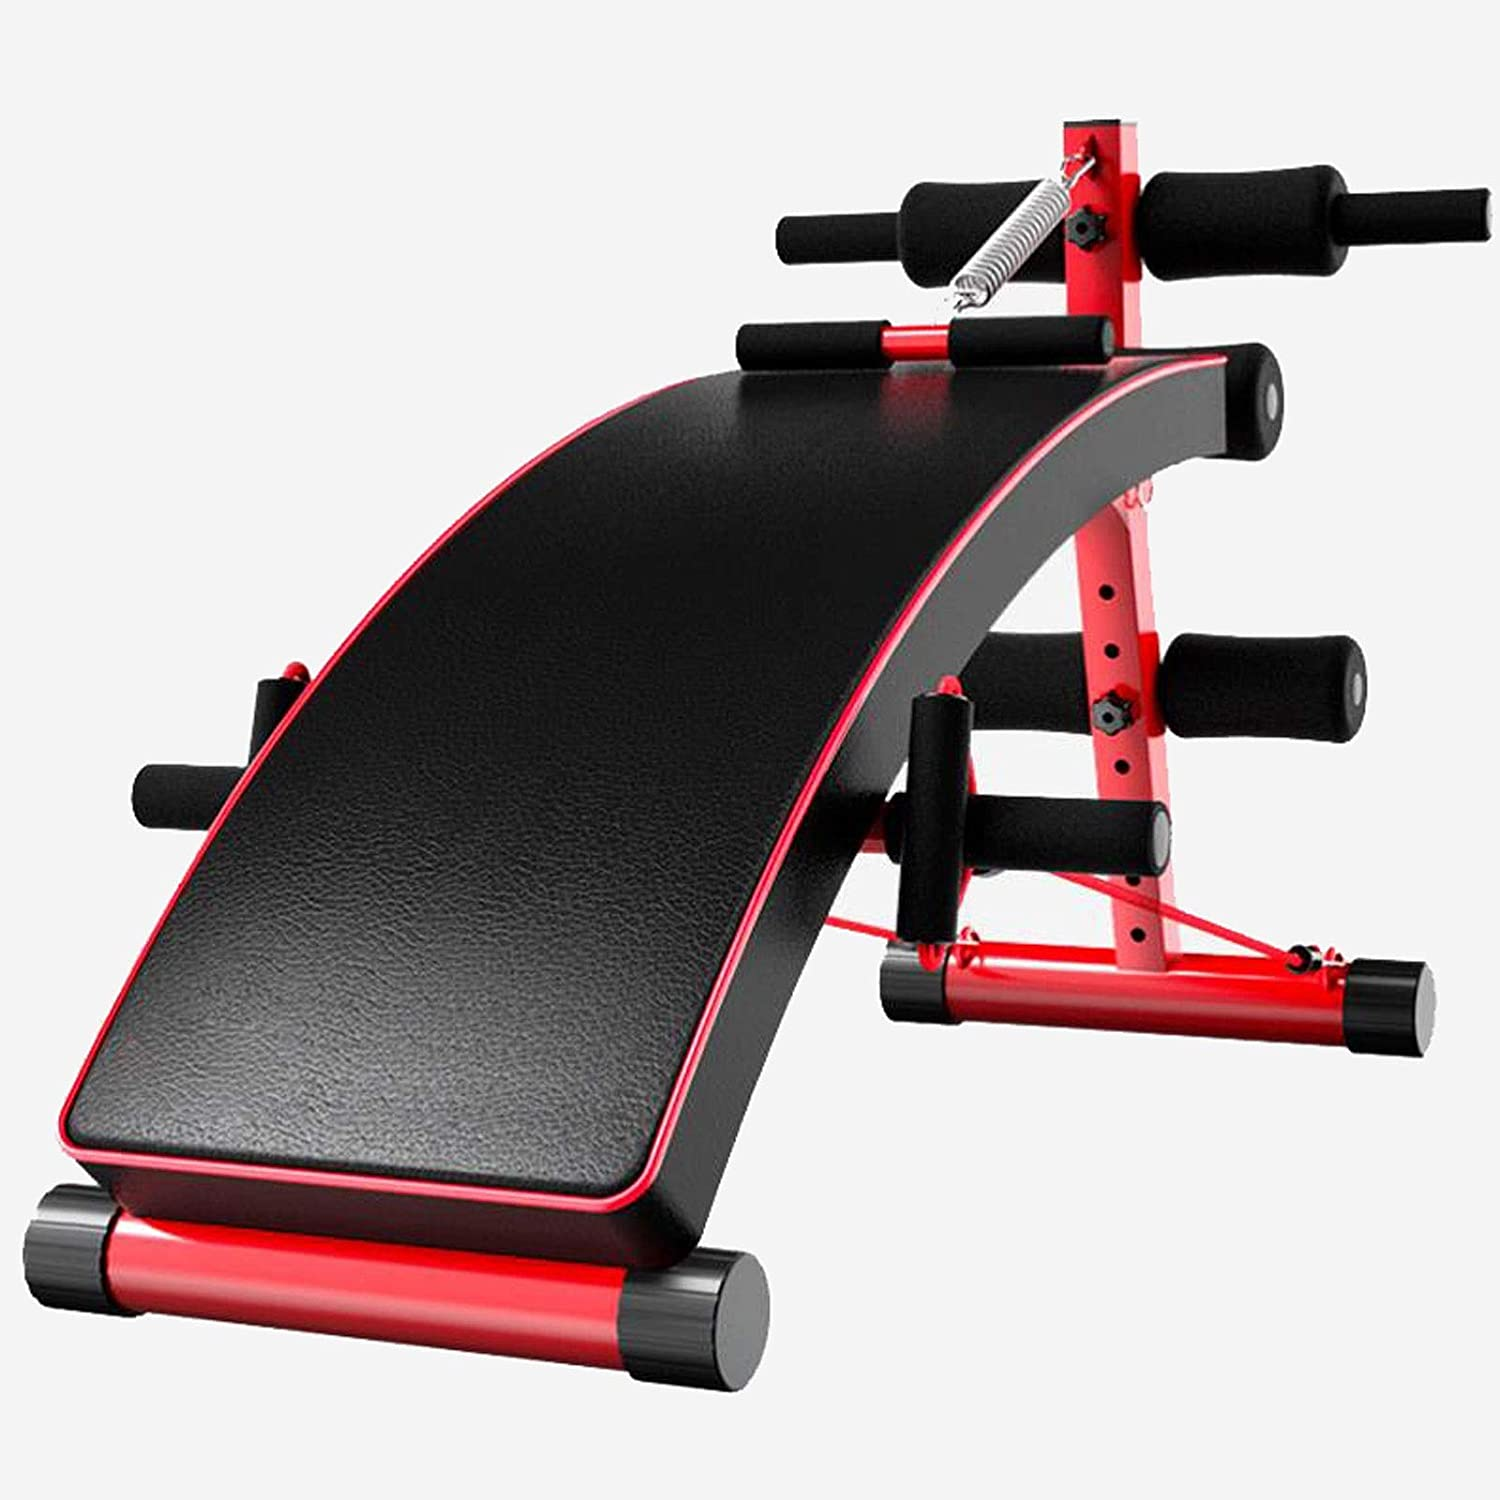 QAZWC-A1 Sit Ranking TOP17 Up Ab Bench sit-ups Aid Ranking TOP7 Exercise Equipment Fitness